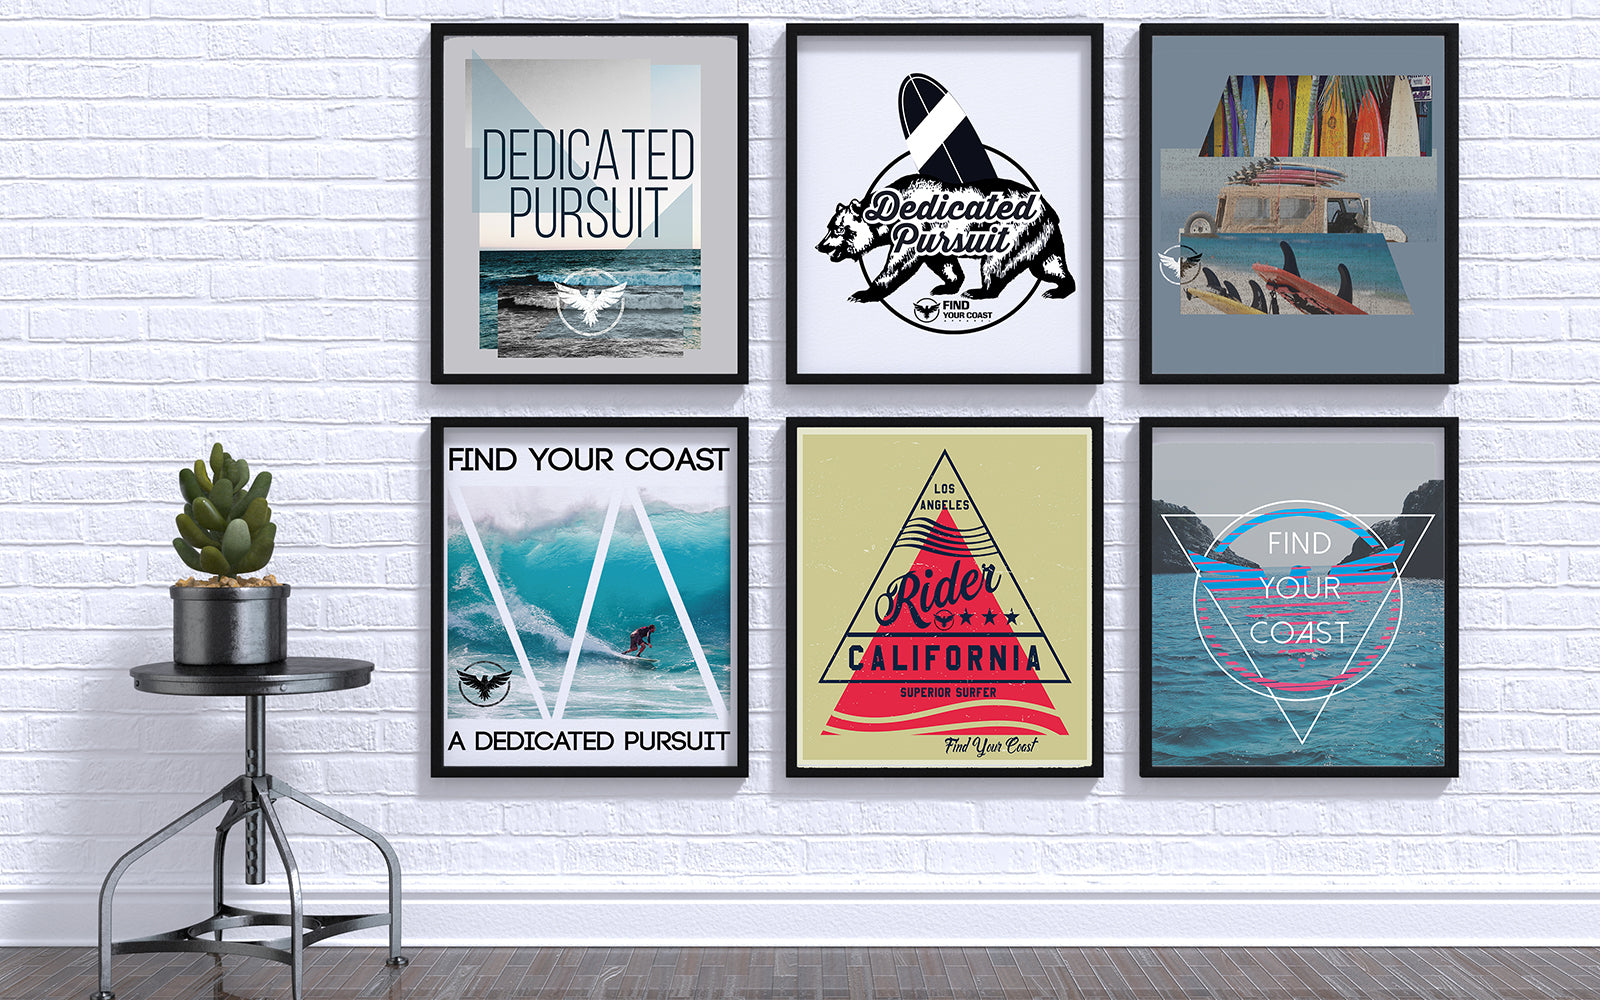 Find Your Coast Print Shop